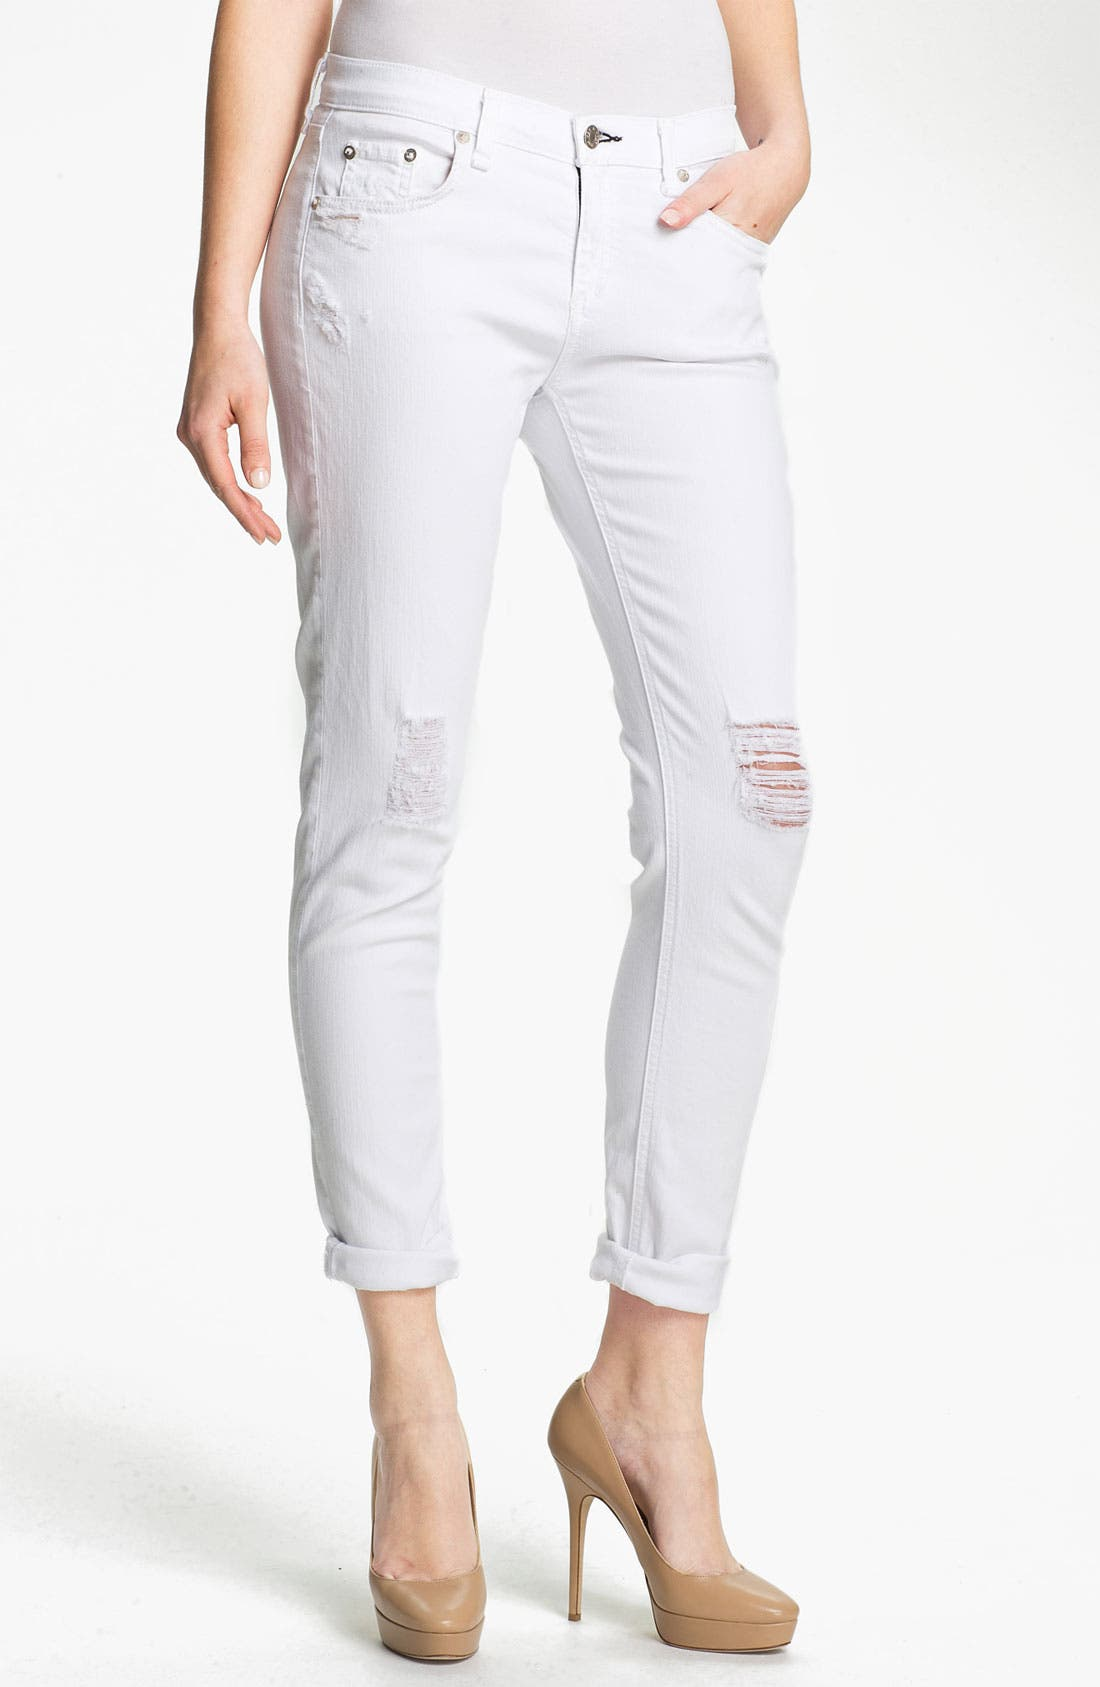 Alternate Image 1 Selected - rag & bone/JEAN 'The Dash' Slouchy Skinny Jeans